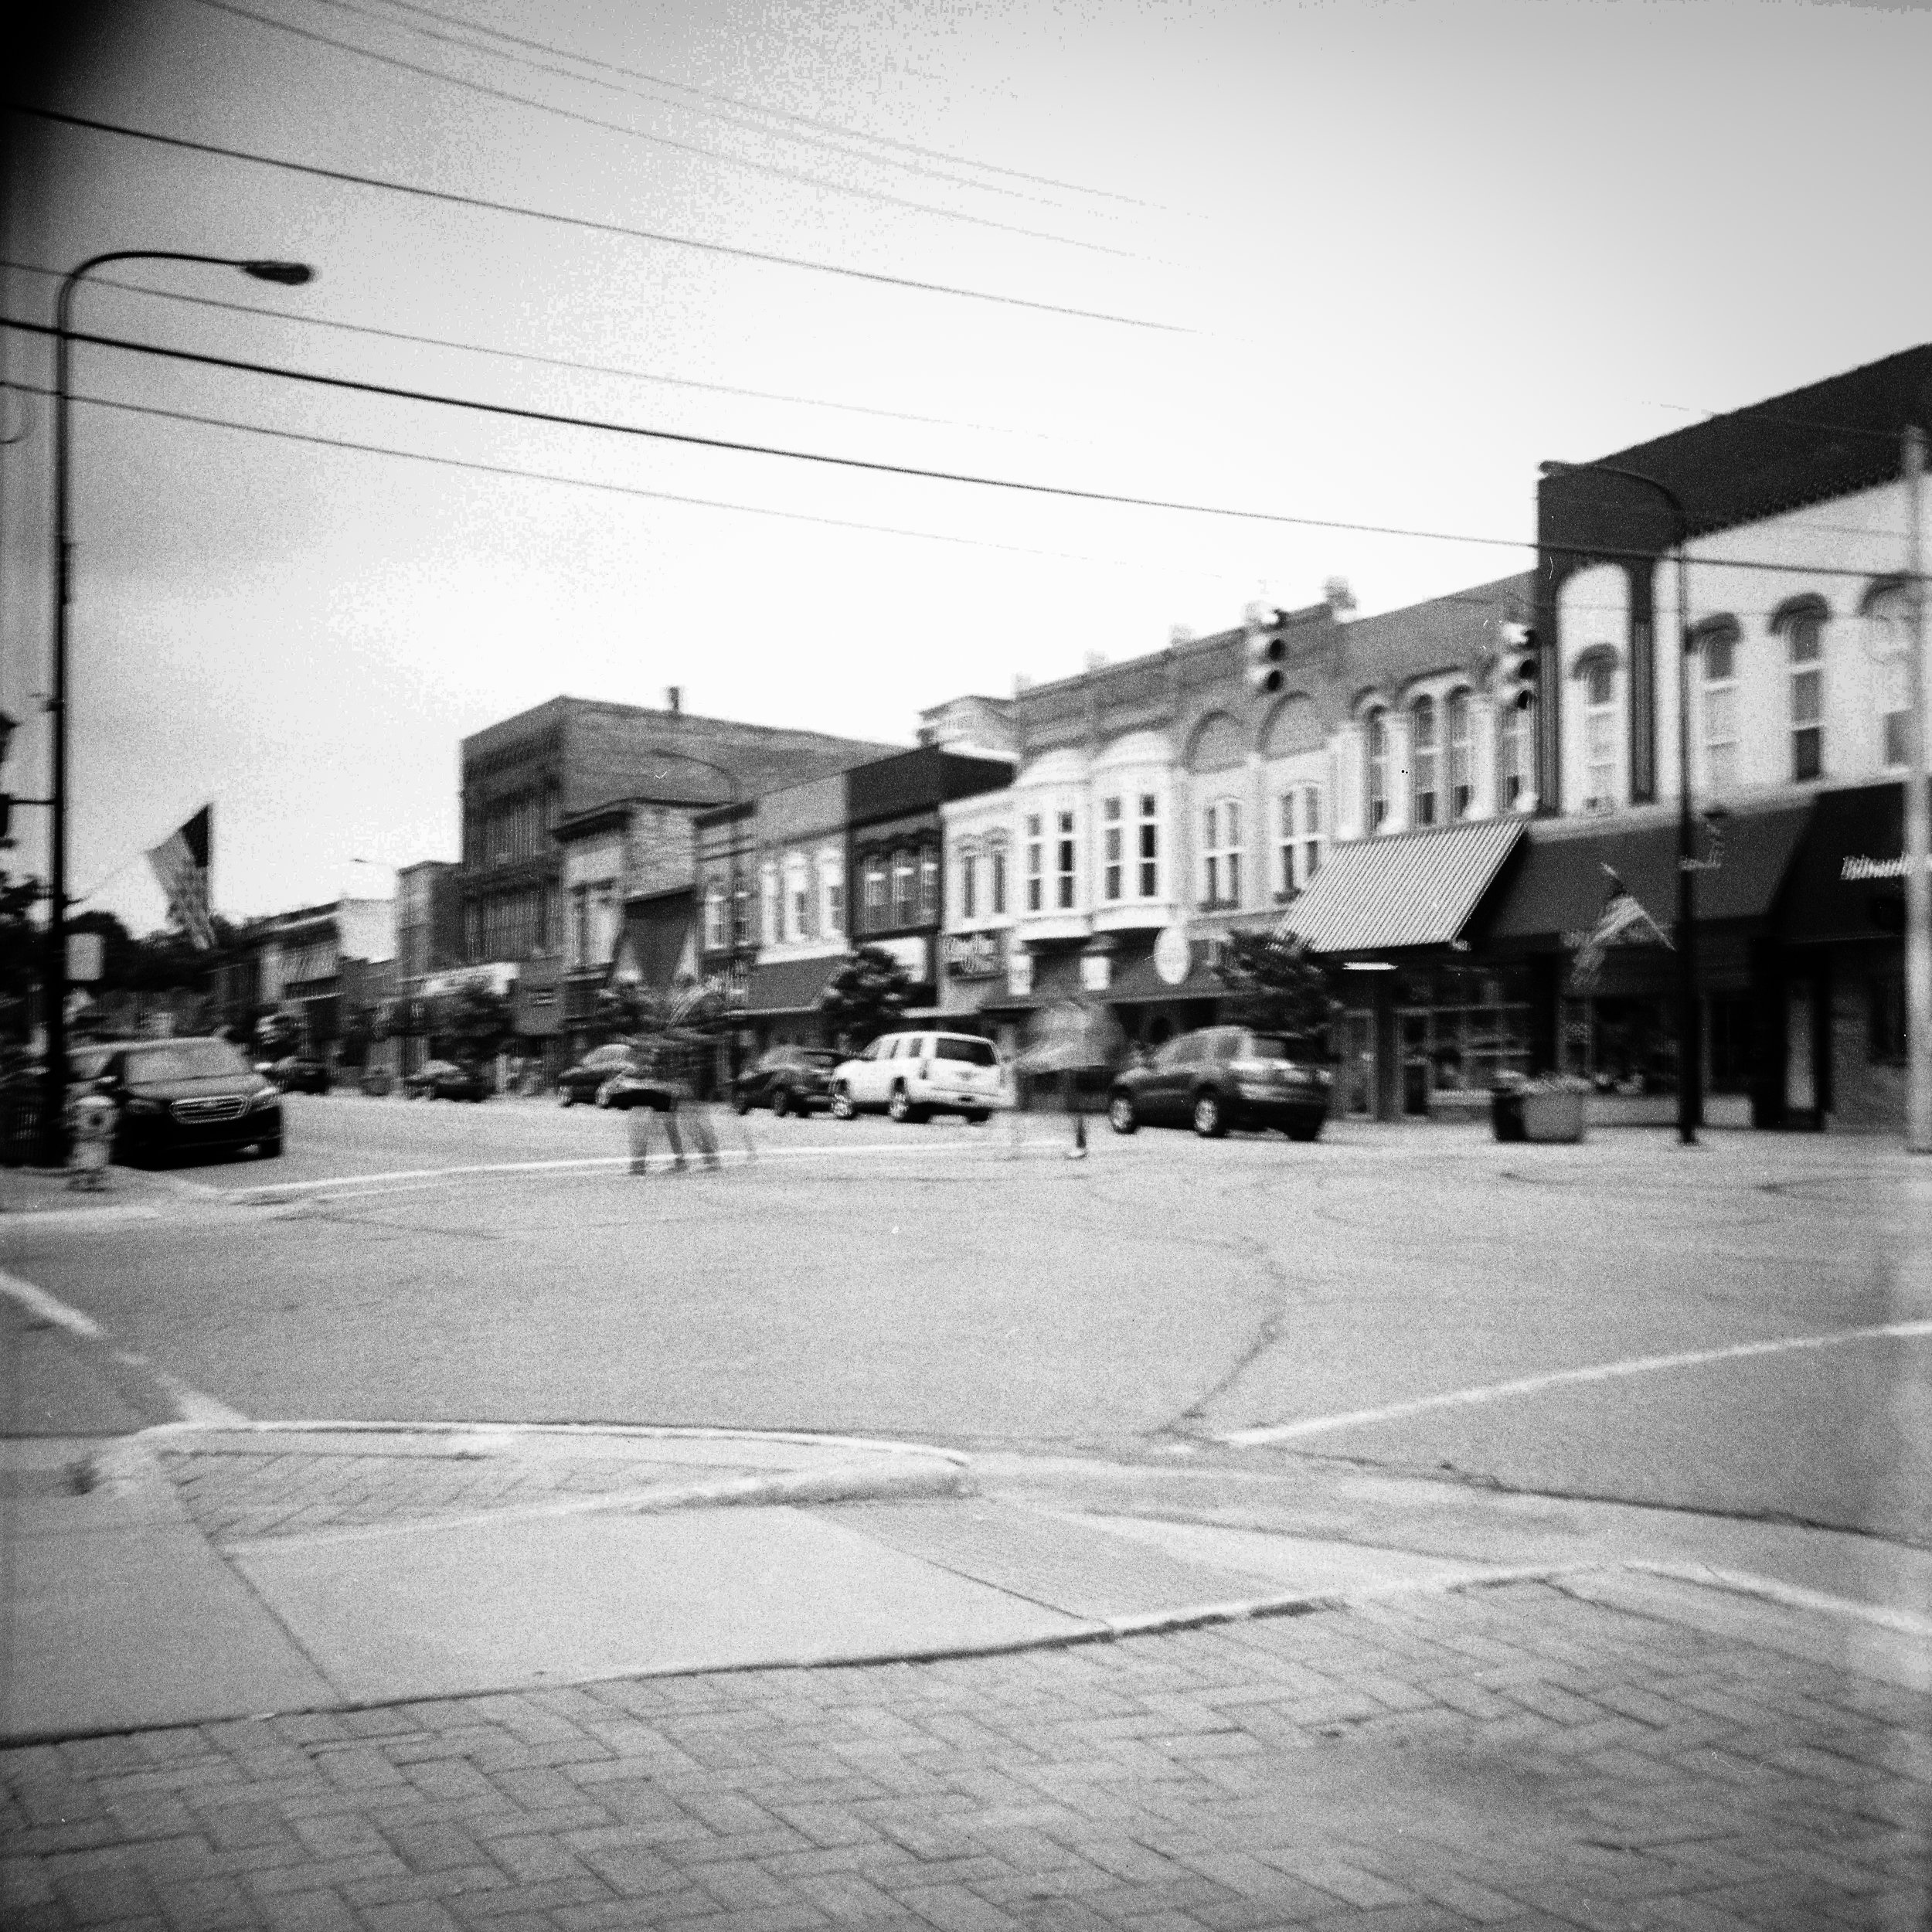 1949 Kodak Brownie Hawkeye Photo Medium Format 620 Film Zoe Kissel Photo Charlotte Michigan Threadbare Mitten Film Festival